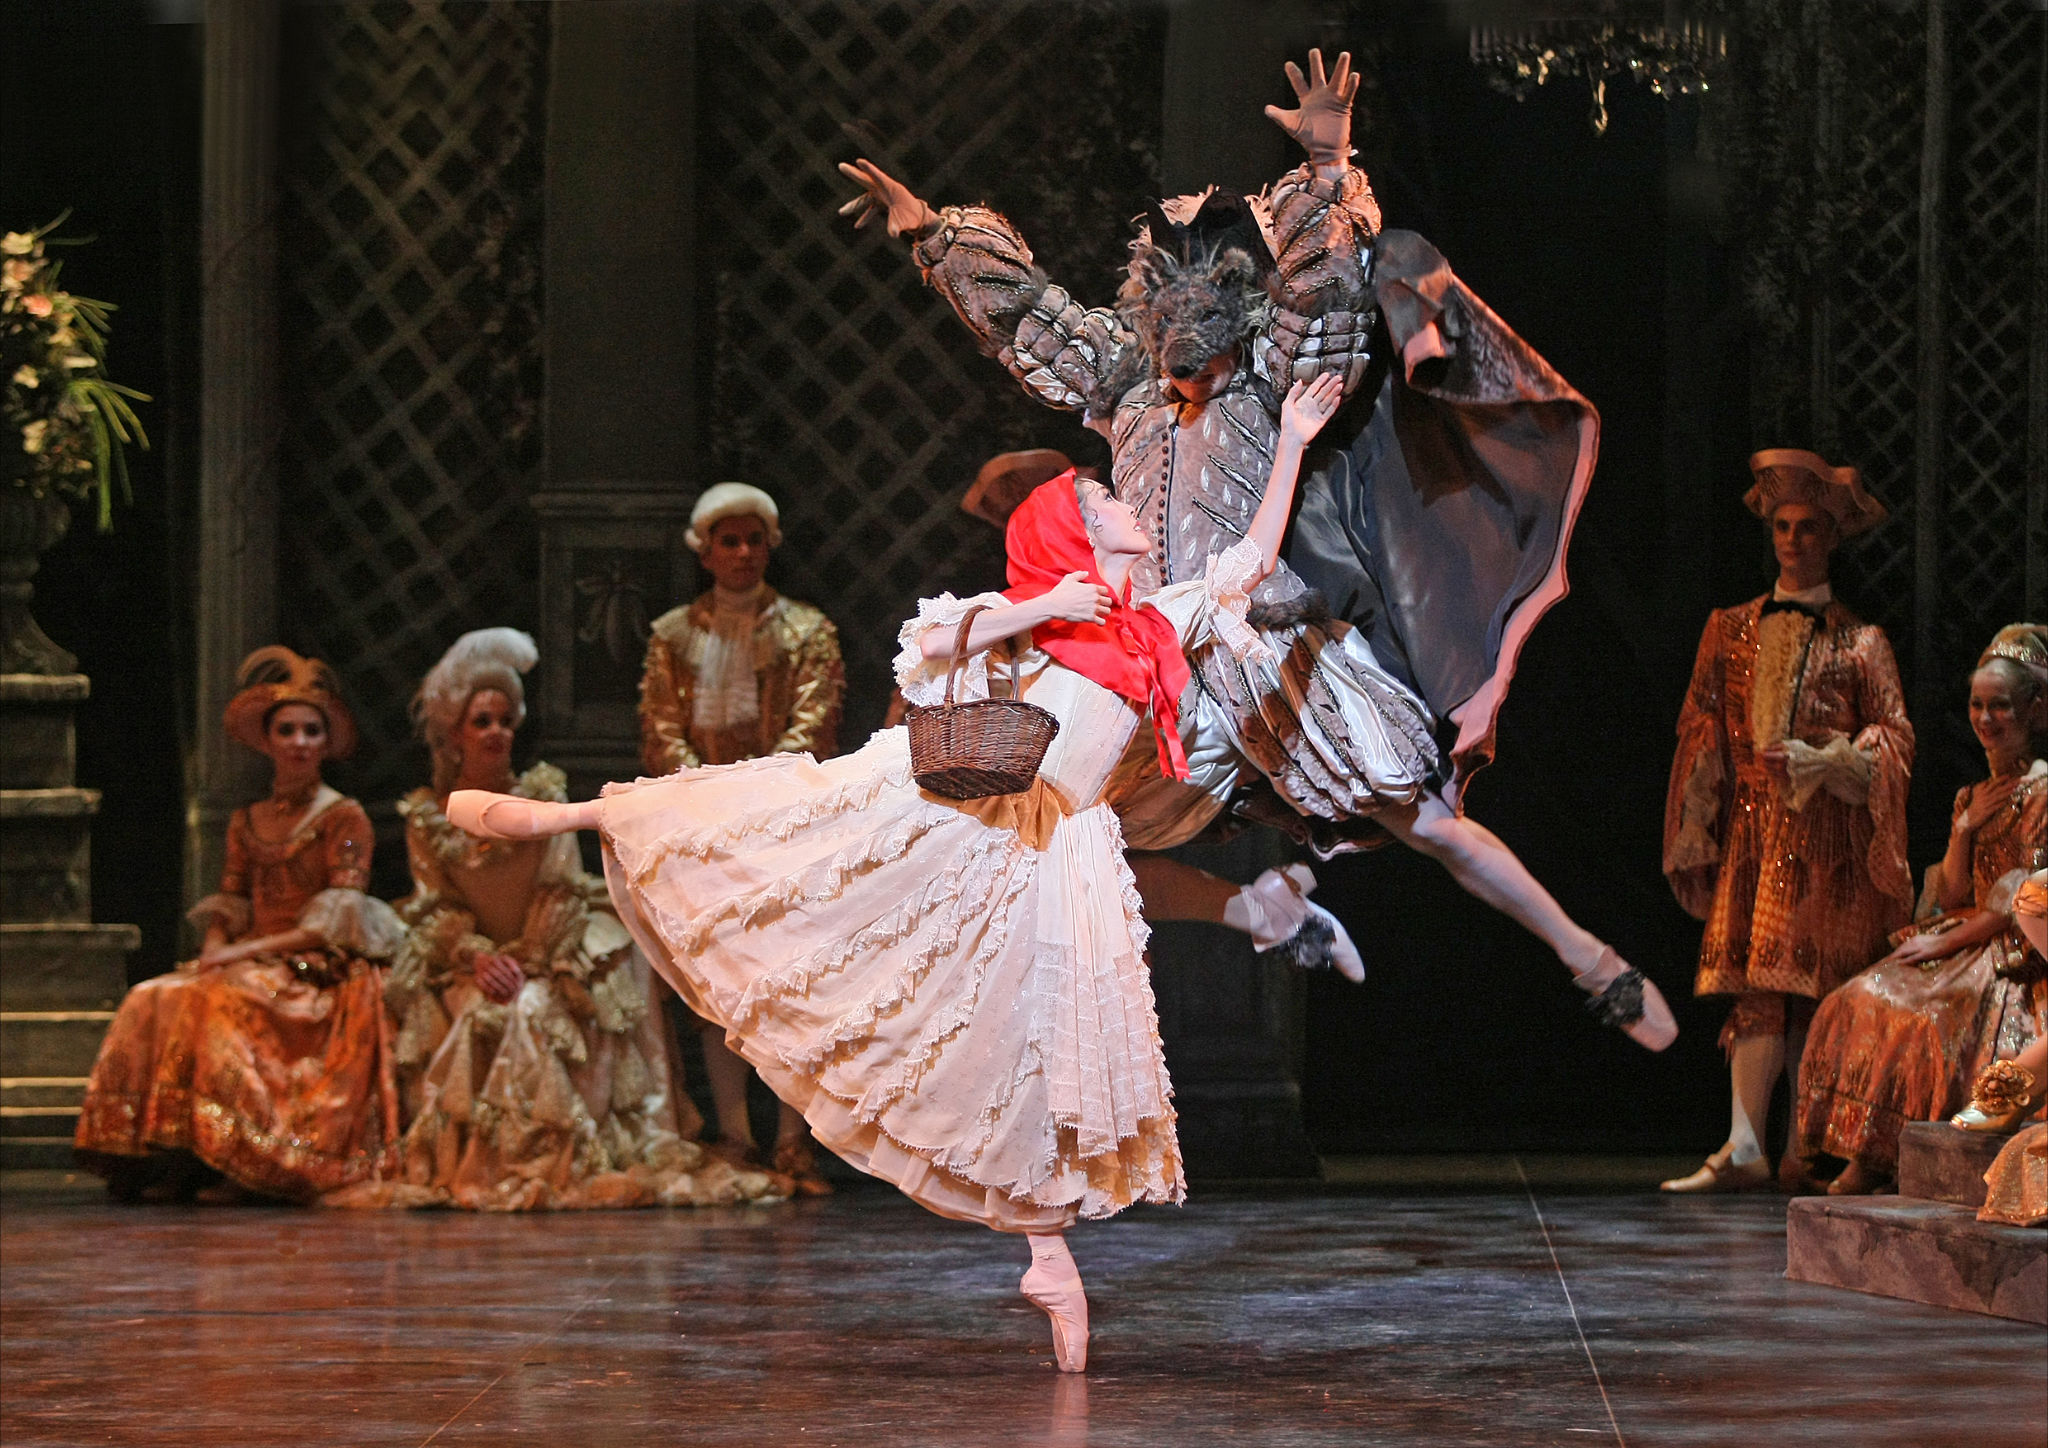 English National Ballet dancers as Red Riding Hood and the Wolf in The Sleeping Beauty.